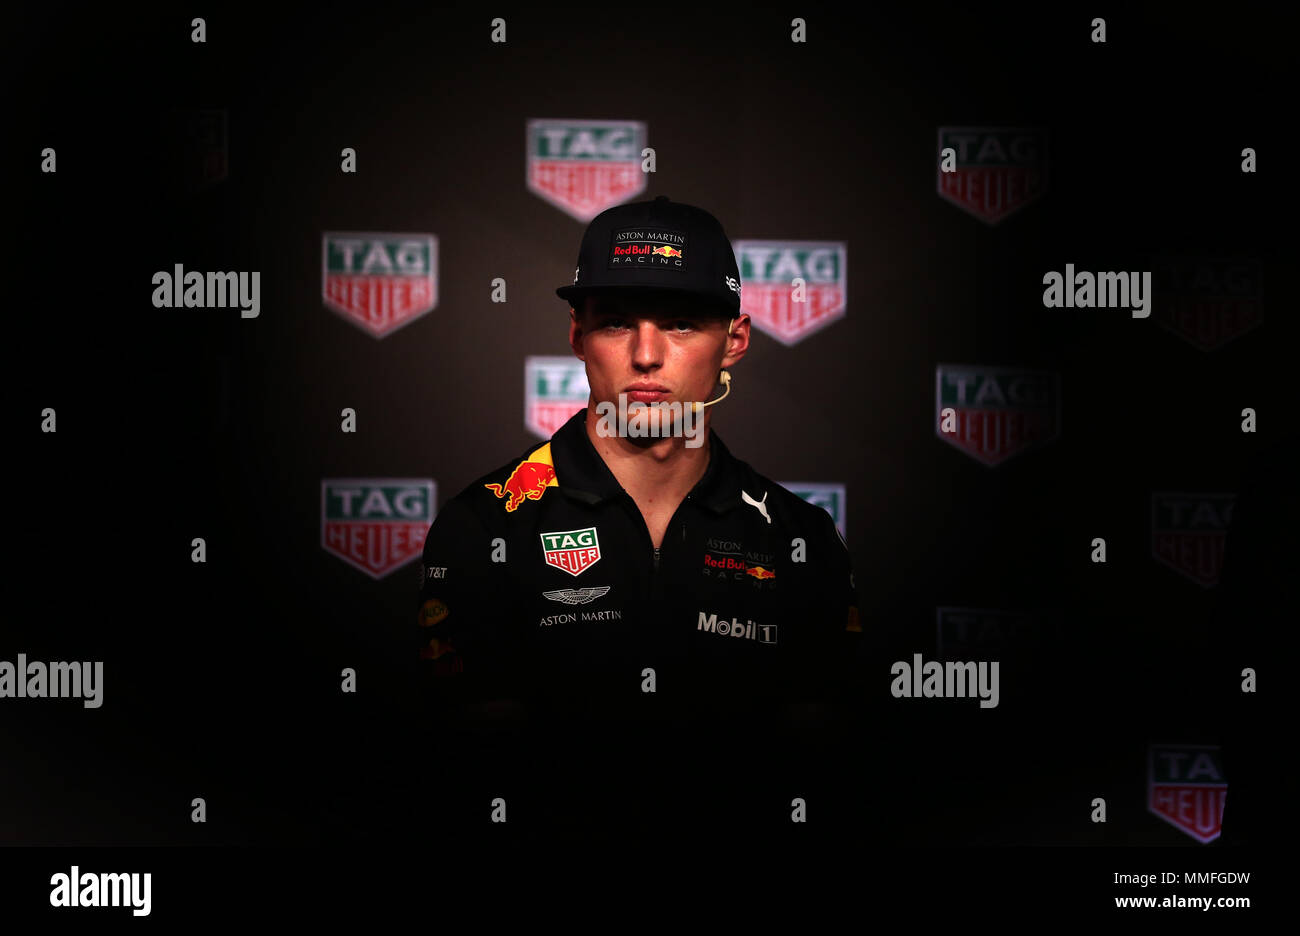 Barcelona -10th May 2018- SPAIN: Max Verstappen during the Aston Martin Red Bull Racing TAG Heuer, in Barcelona, on 5th May 2018. Photo: Joan Valls/Urbanandsport/Cordon Press - Stock Image